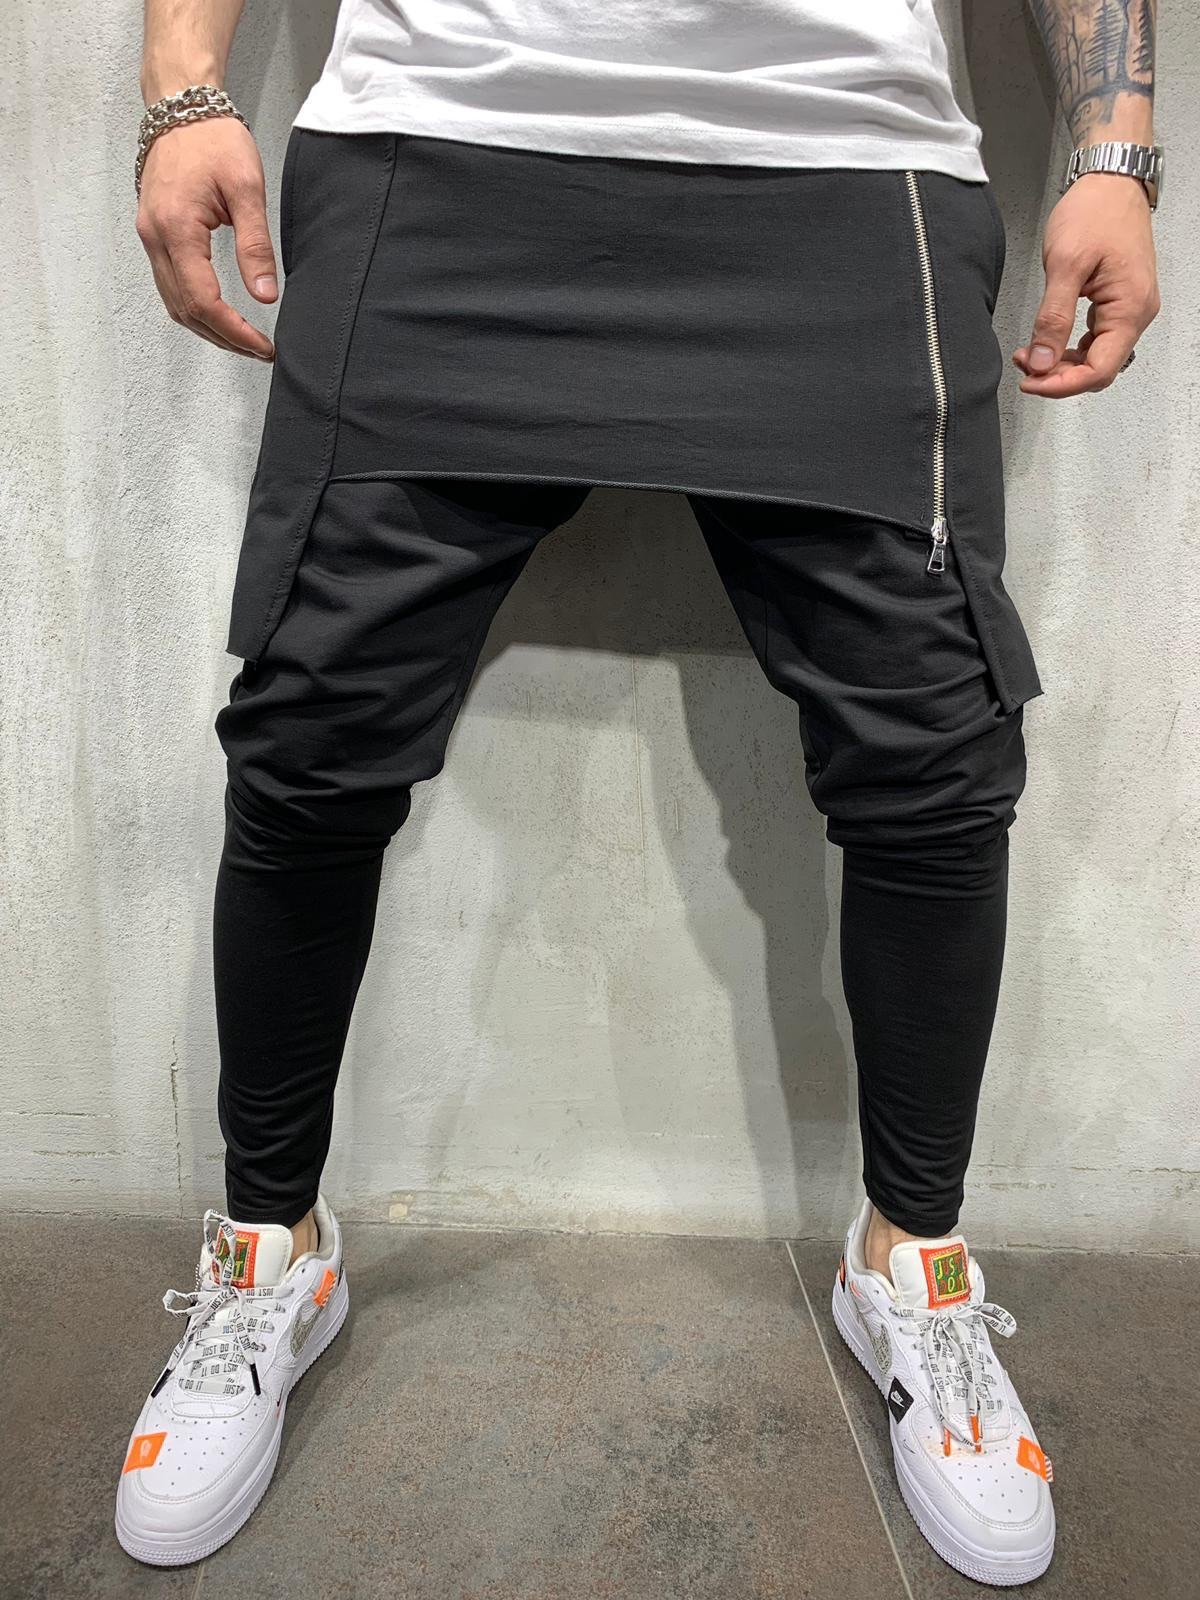 2019 European And American Men'S Self-Cultivation Personality Casual Two-Layer Sports Trousers Men'S Harem Pants, Outdoor